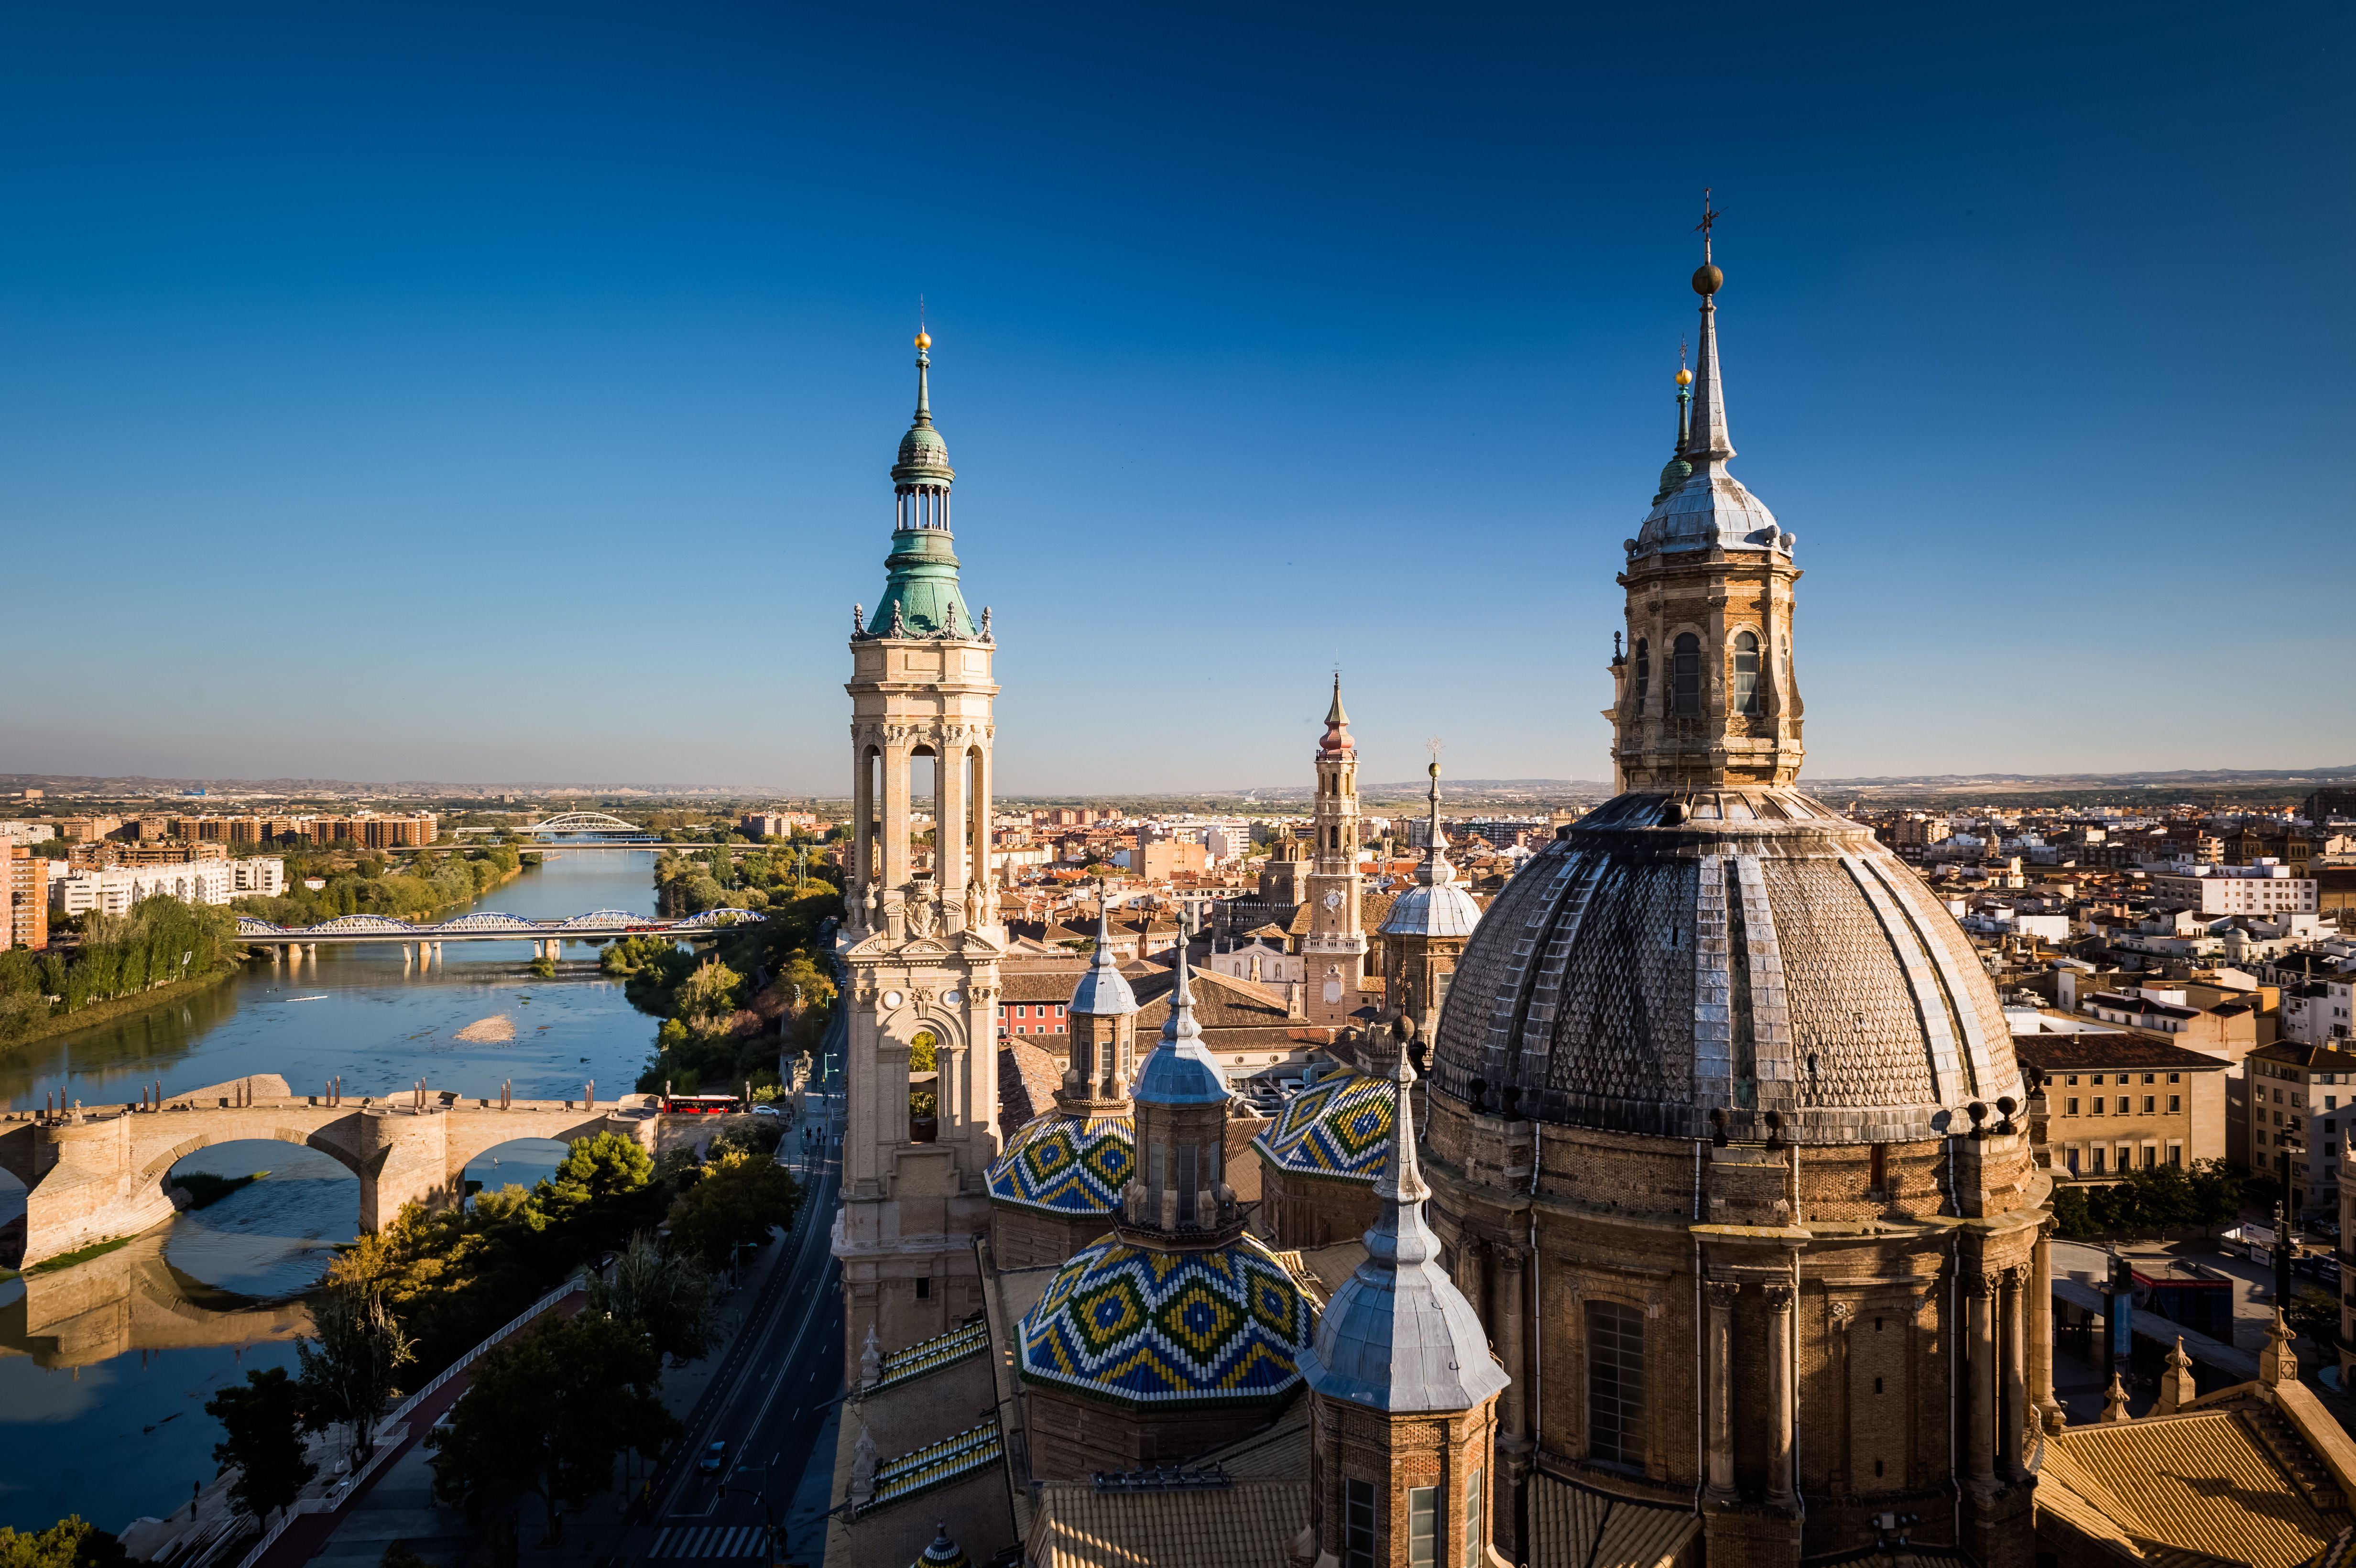 Overlooking view of the Cathedral-Basilica of Our Lady of the Pillar in Zaragoza, Aragon, Spain